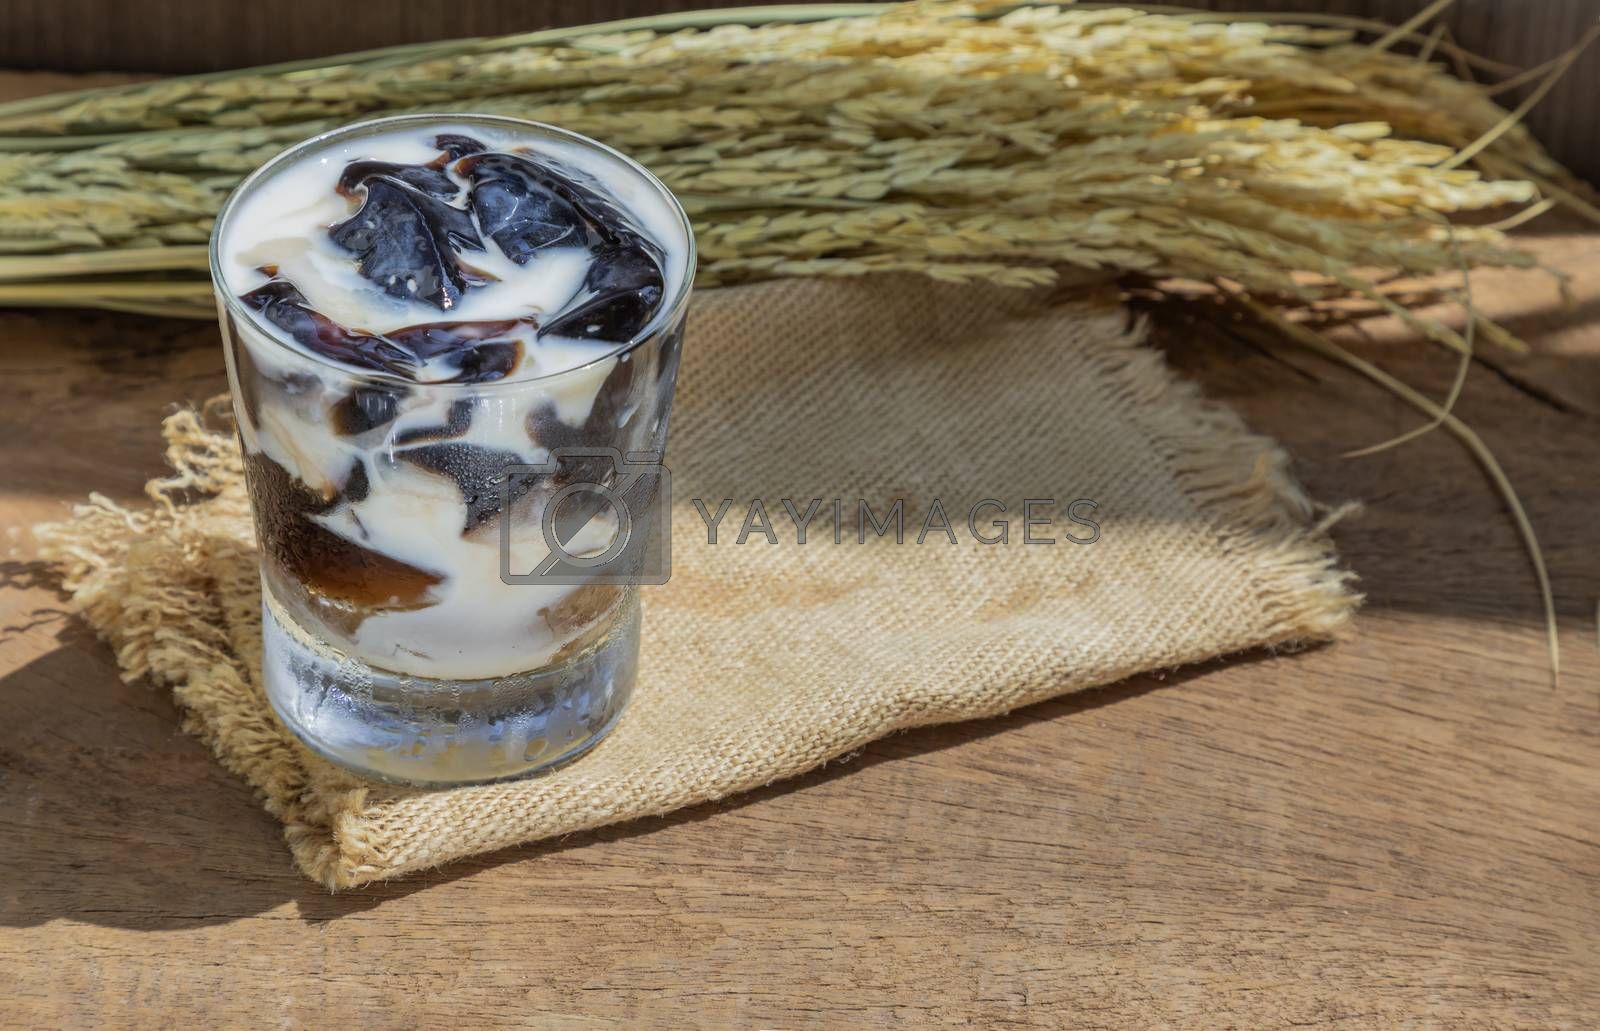 A Glass of Fresh milk grass jelly Dessert herbal gelatin or Jelly black with milk on the wooden background. Sweet delicious dessert chinese style.